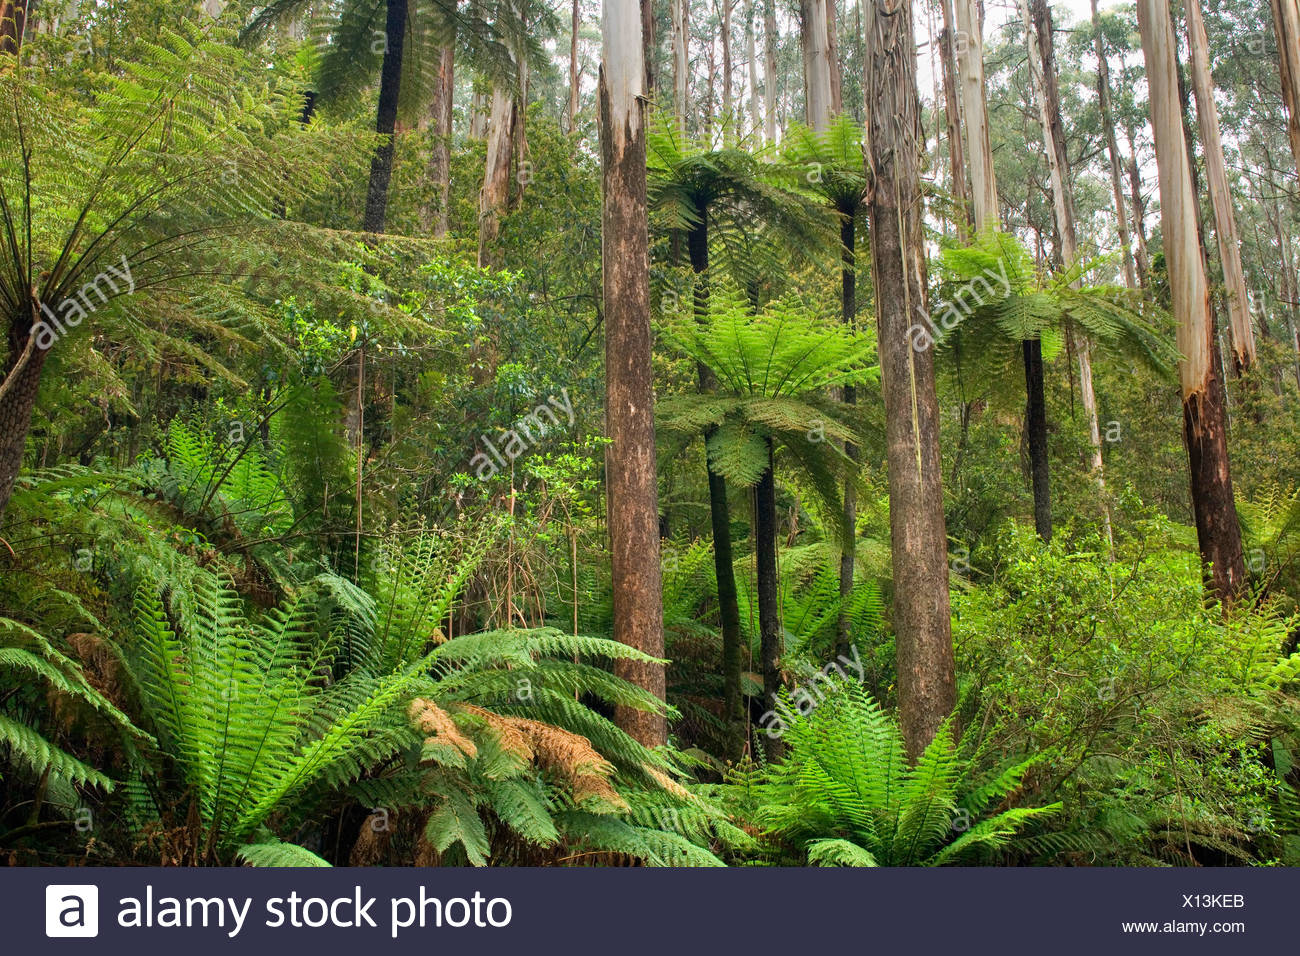 mountain ash, Victorian ash (Eucalyptus regnans), Wet Sclerophyll Forest, magnificent forest consisting of mainly Mountain Ash trees, Eucalyptus regnans, and impressive tree ferns and ground ferns as understory, Australia, Victoria, Yarra Ranges National Park - Stock Image